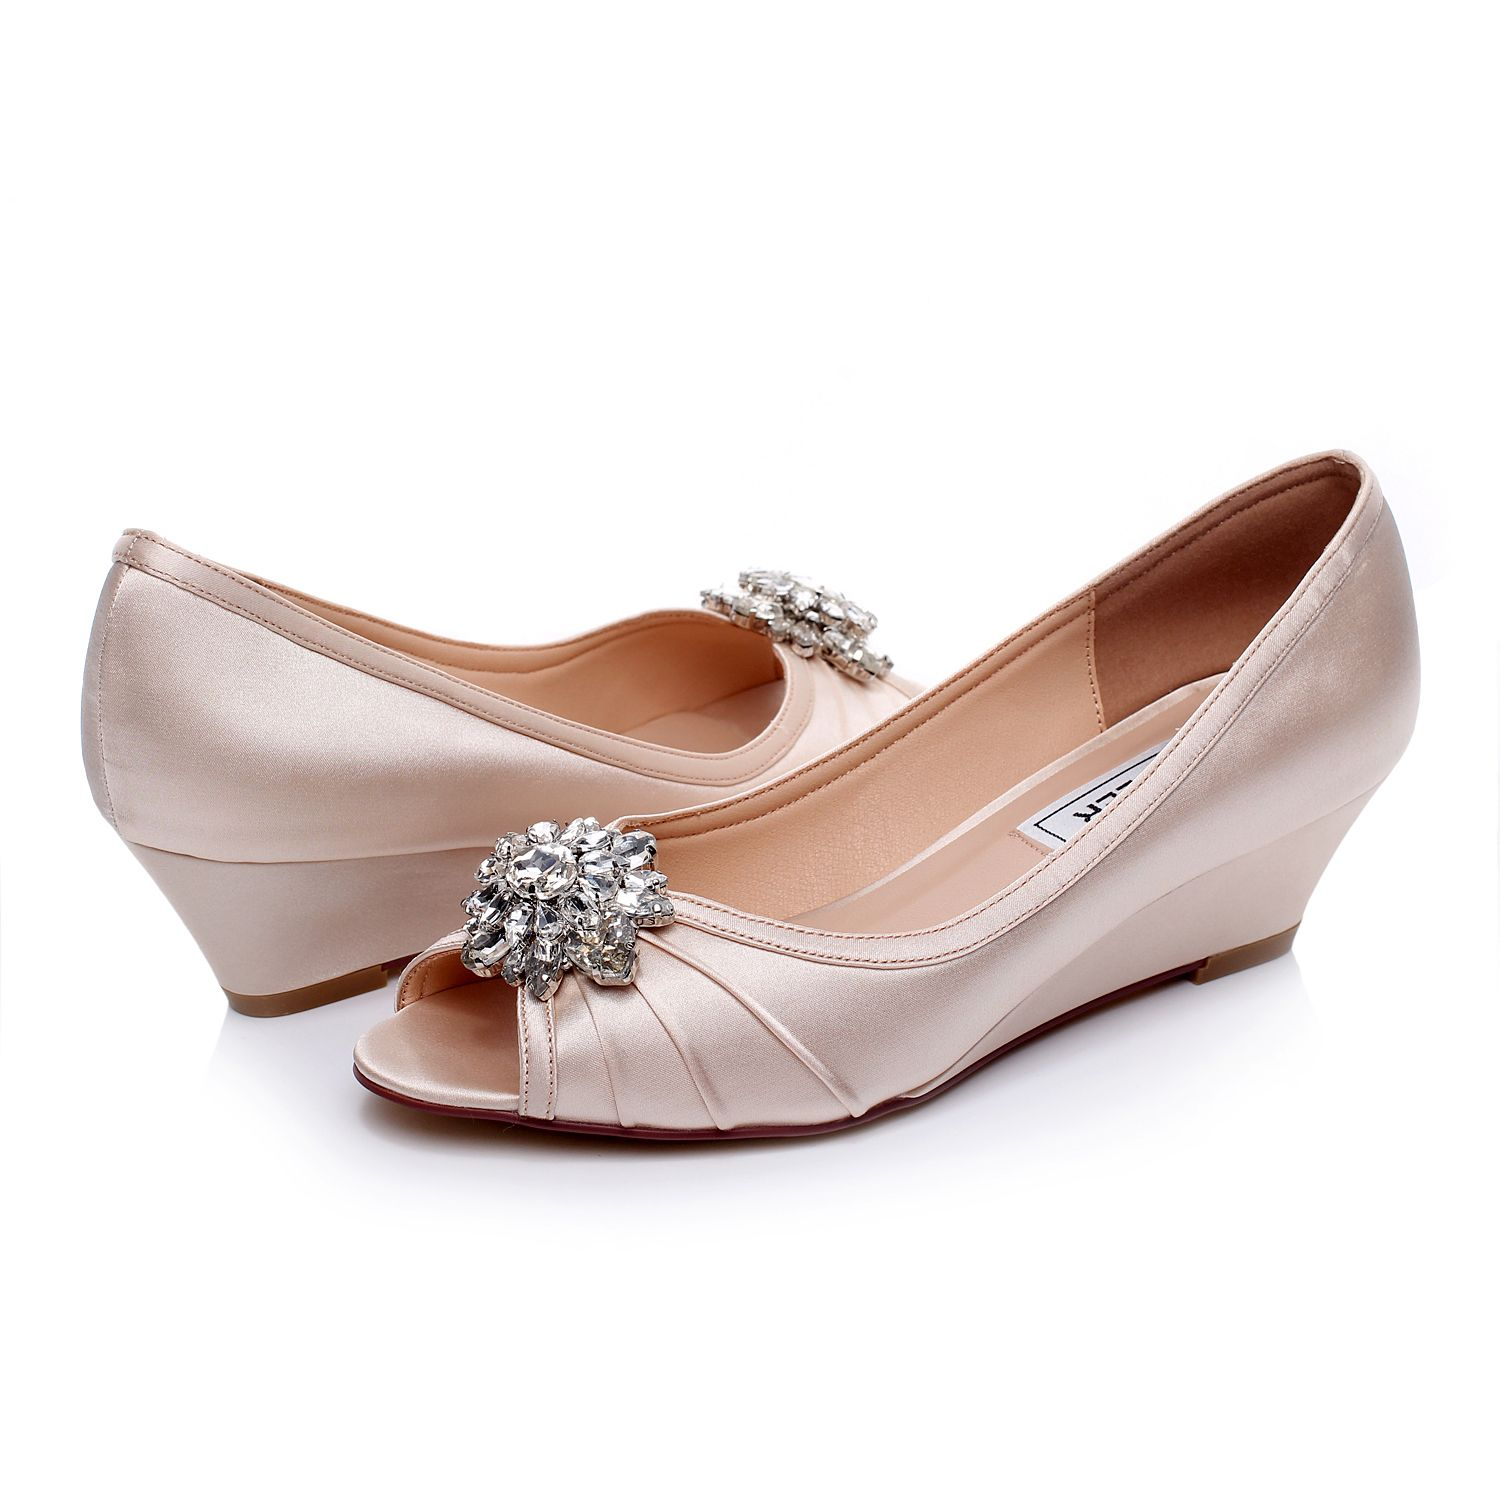 30++ Wedge comfortable wedding shoes for bride information